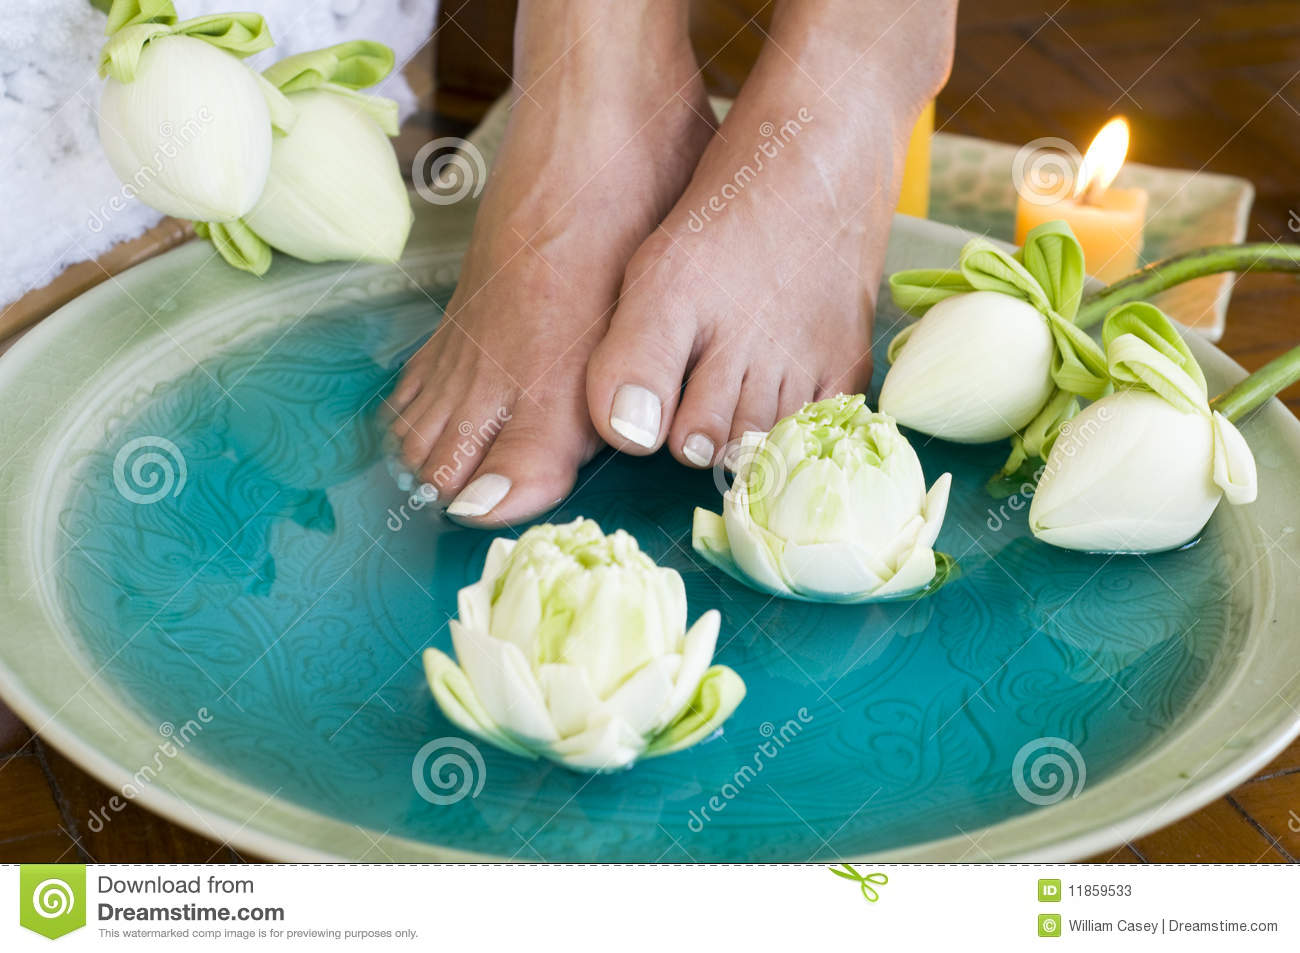 Lotus flower aromatherapy spa for feet 5 stock image image of heal download lotus flower aromatherapy spa for feet 5 stock image image of heal relaxation izmirmasajfo